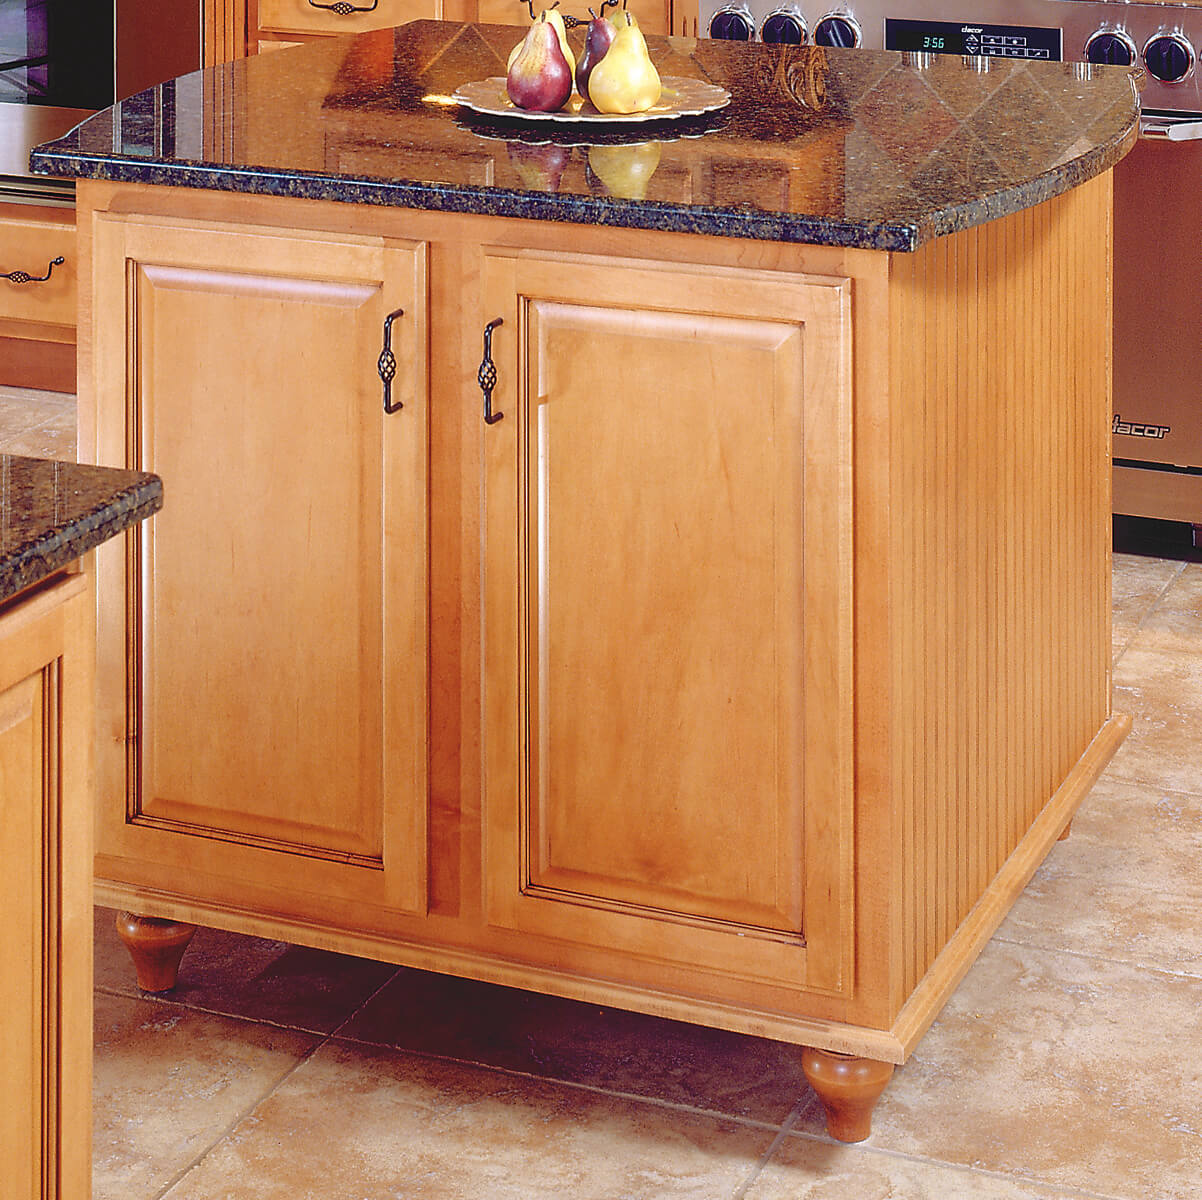 Castlewood Tulip Foot SY-BF-177 Kitchen Island application